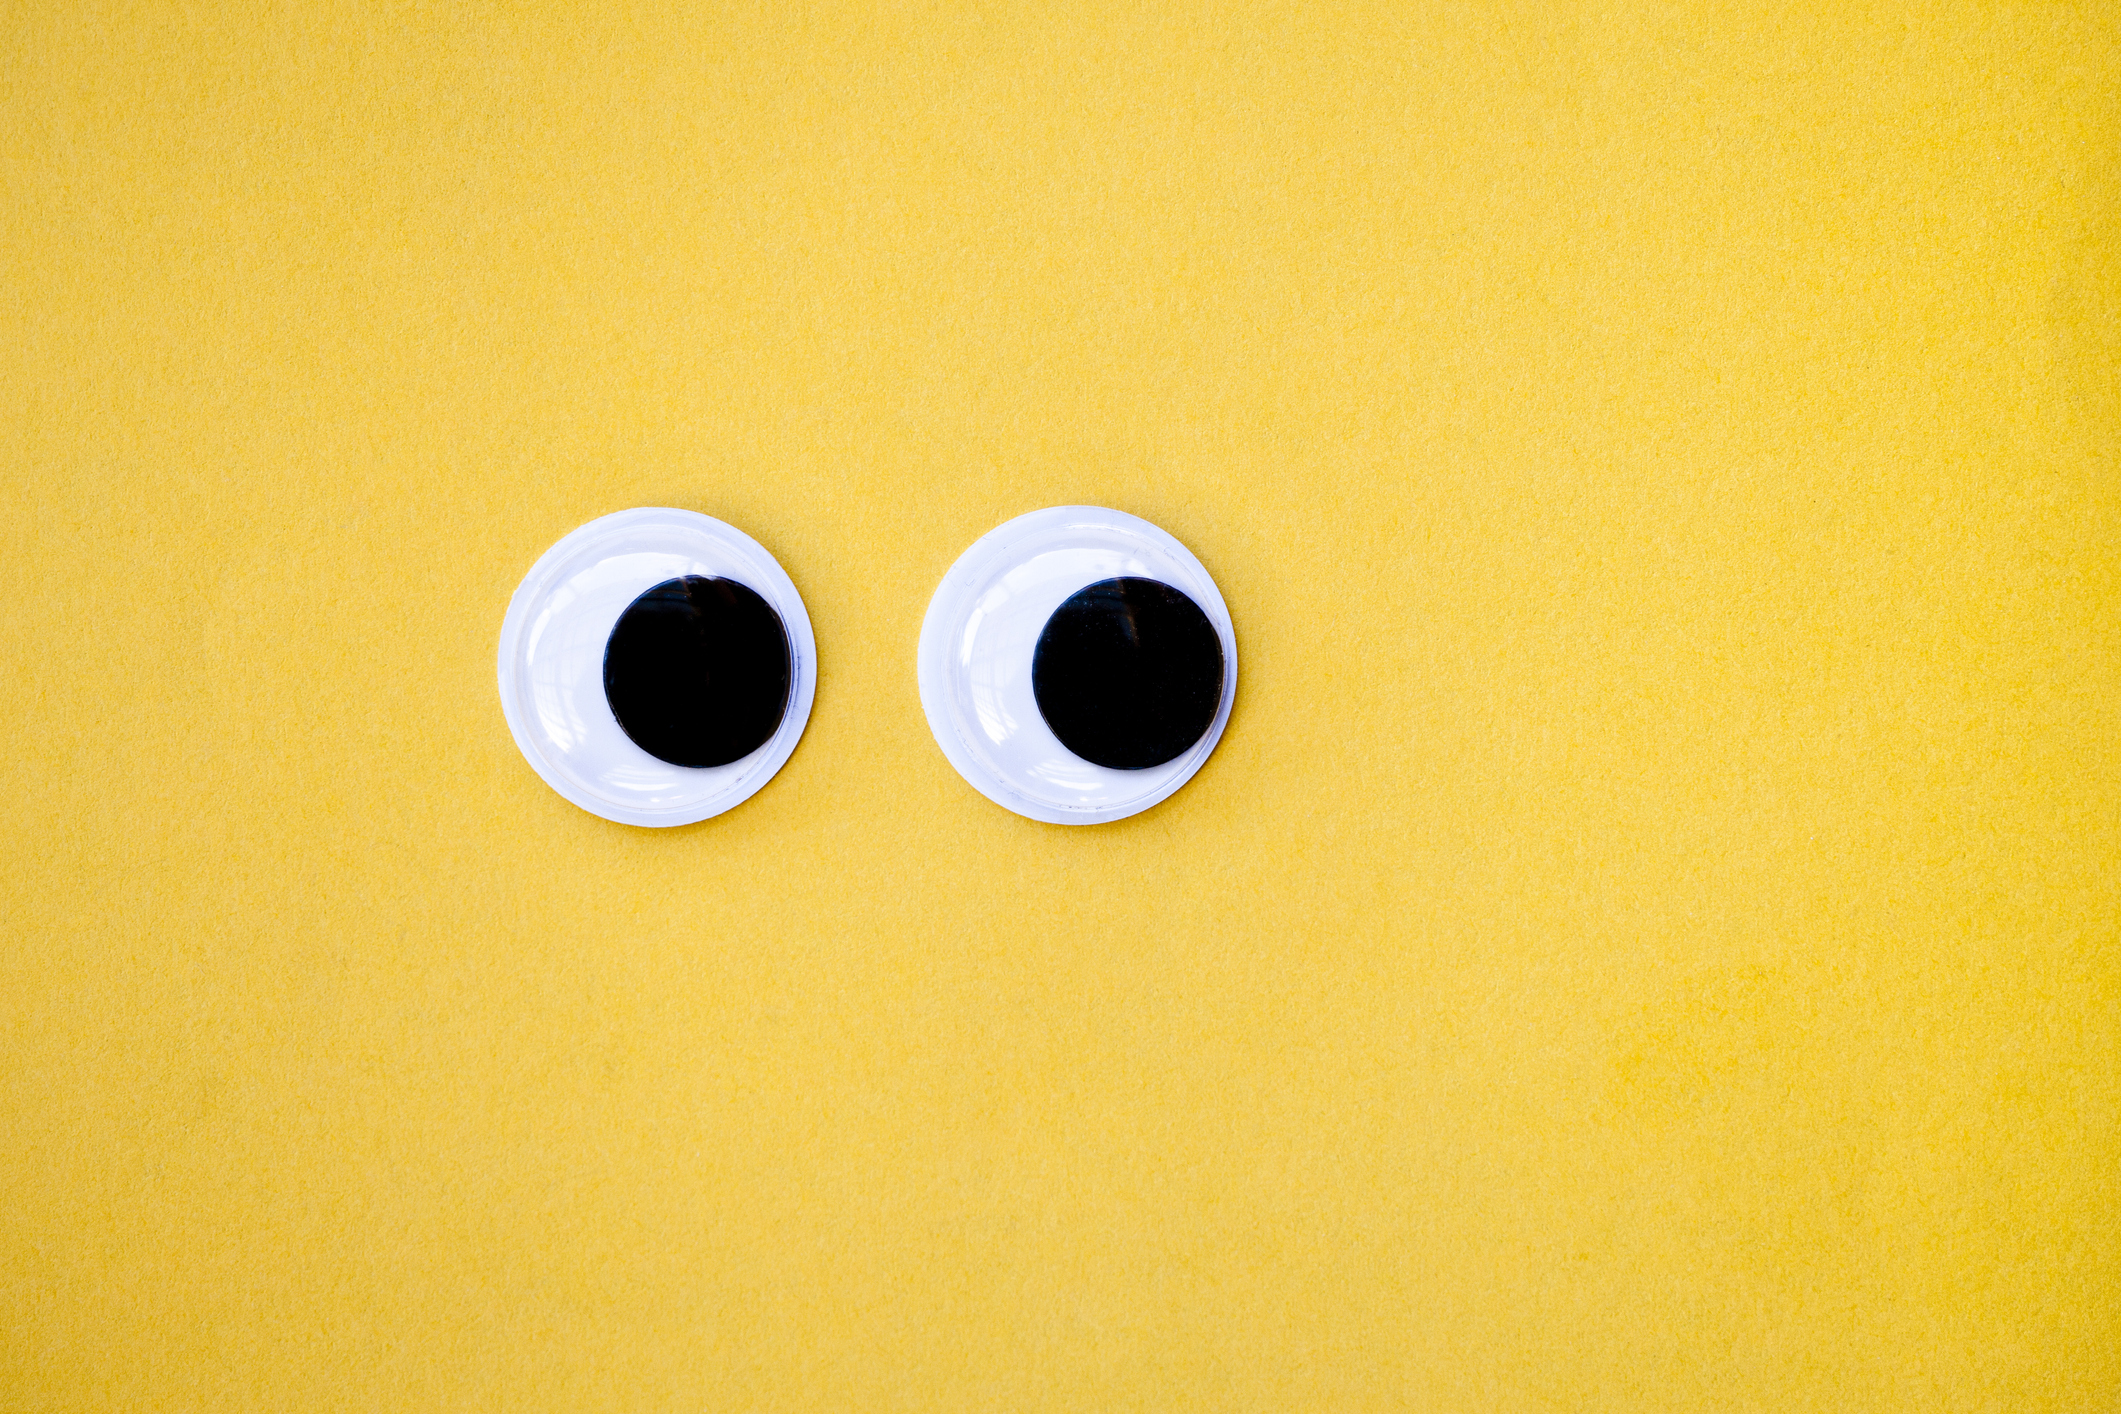 Googly eyes on a yellow background, looking sideways.